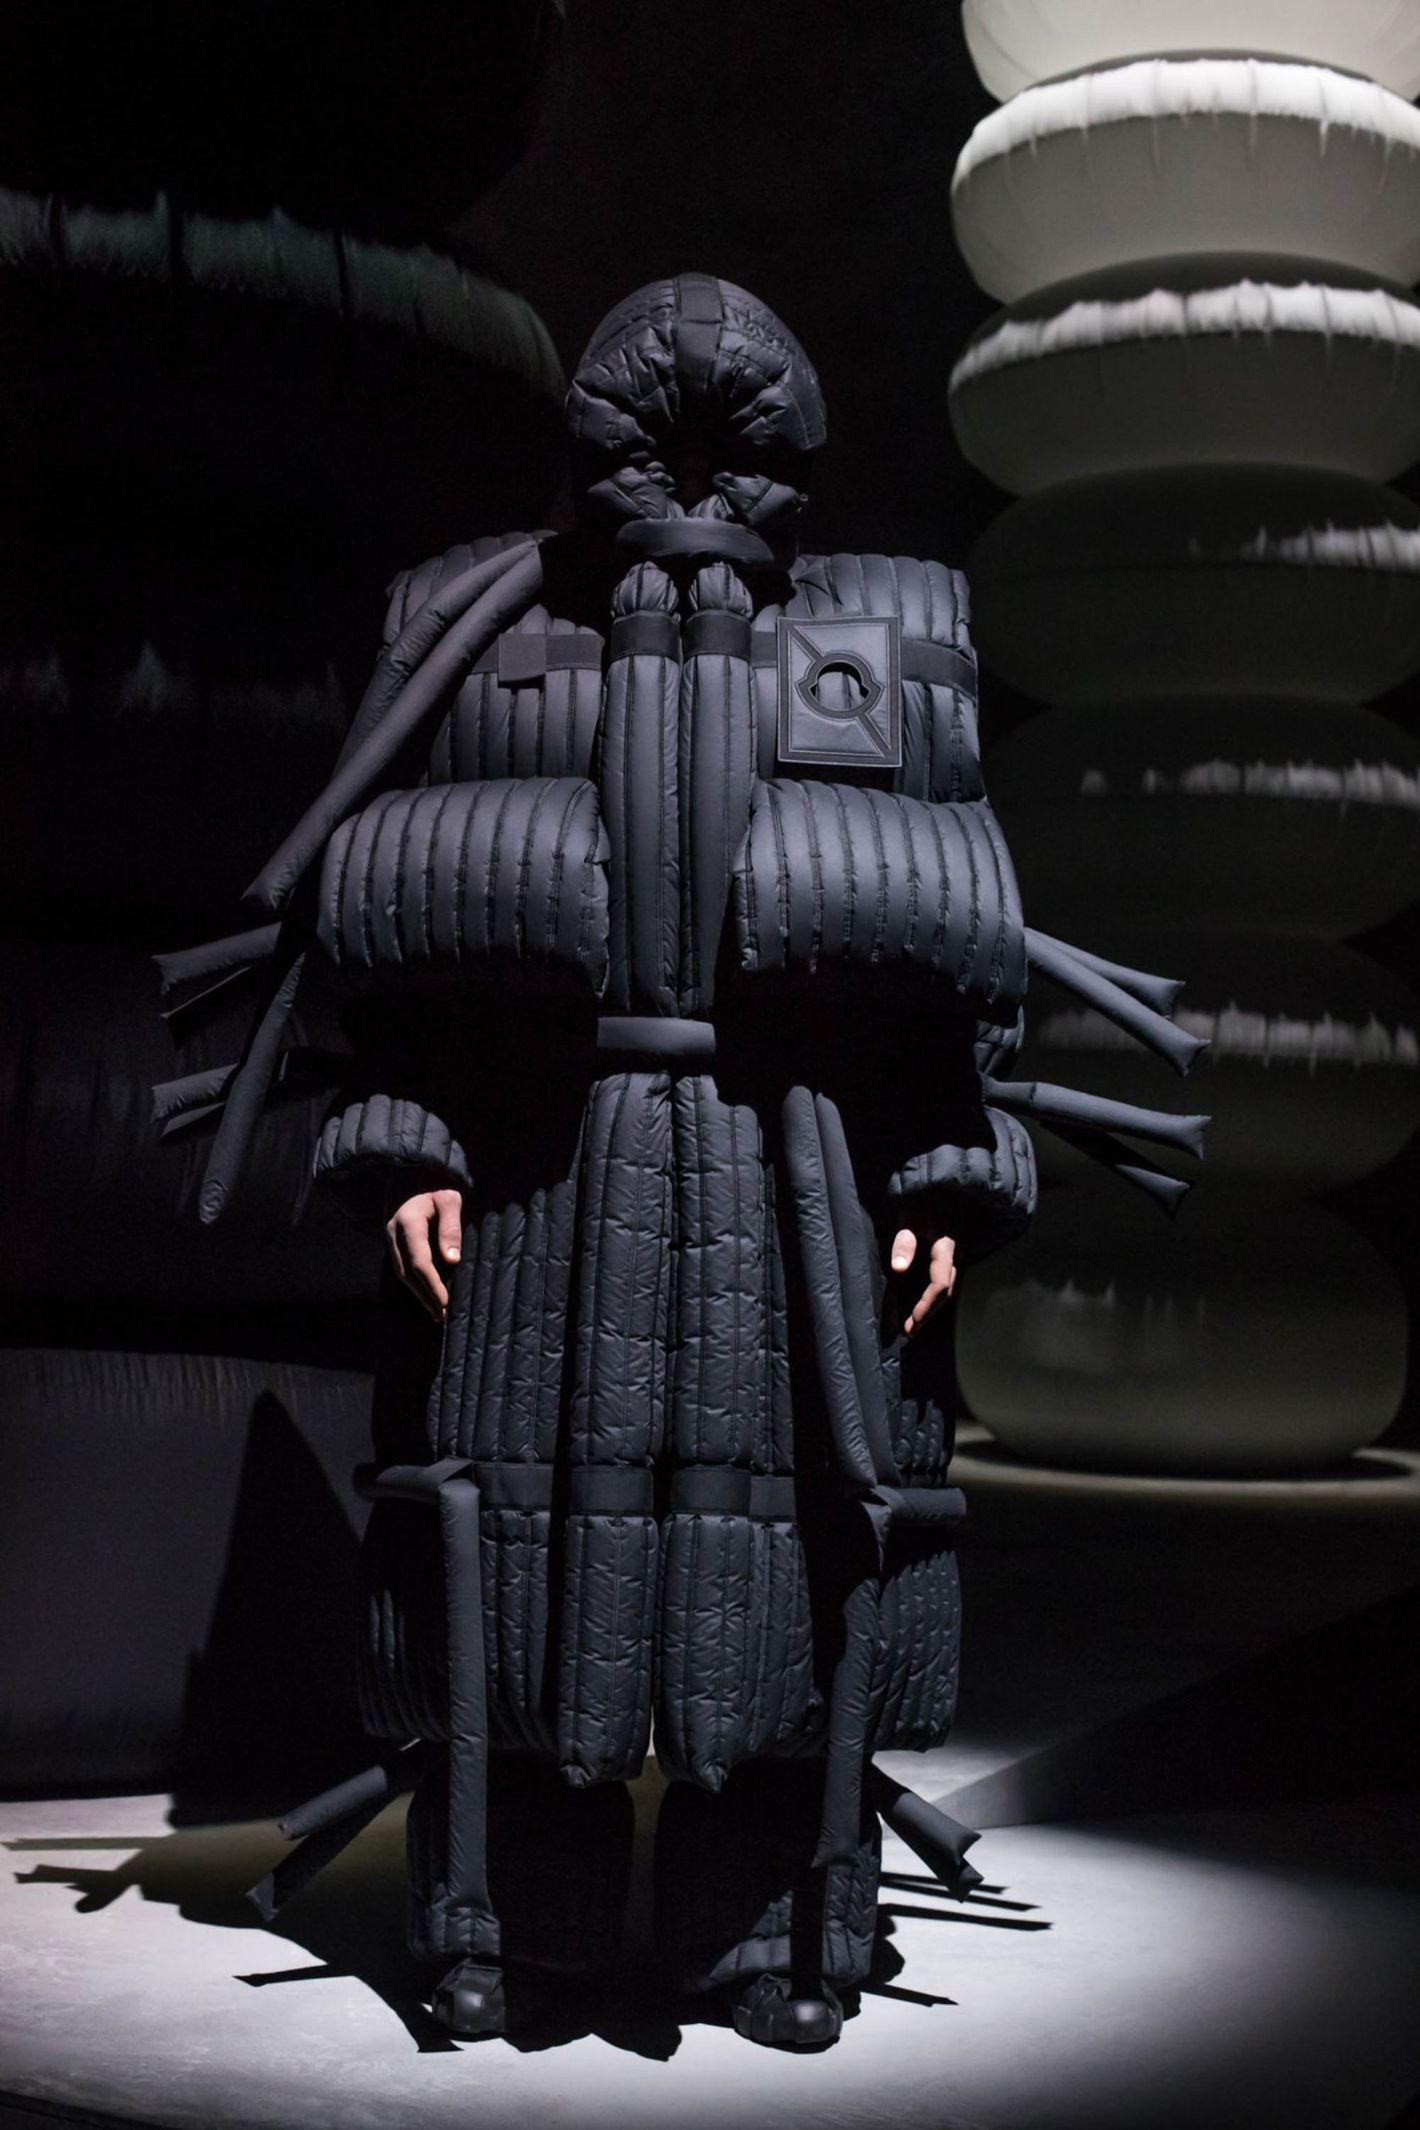 eb6f2fd19182 Moncler Made Puffer Coat Gowns and They're Genius